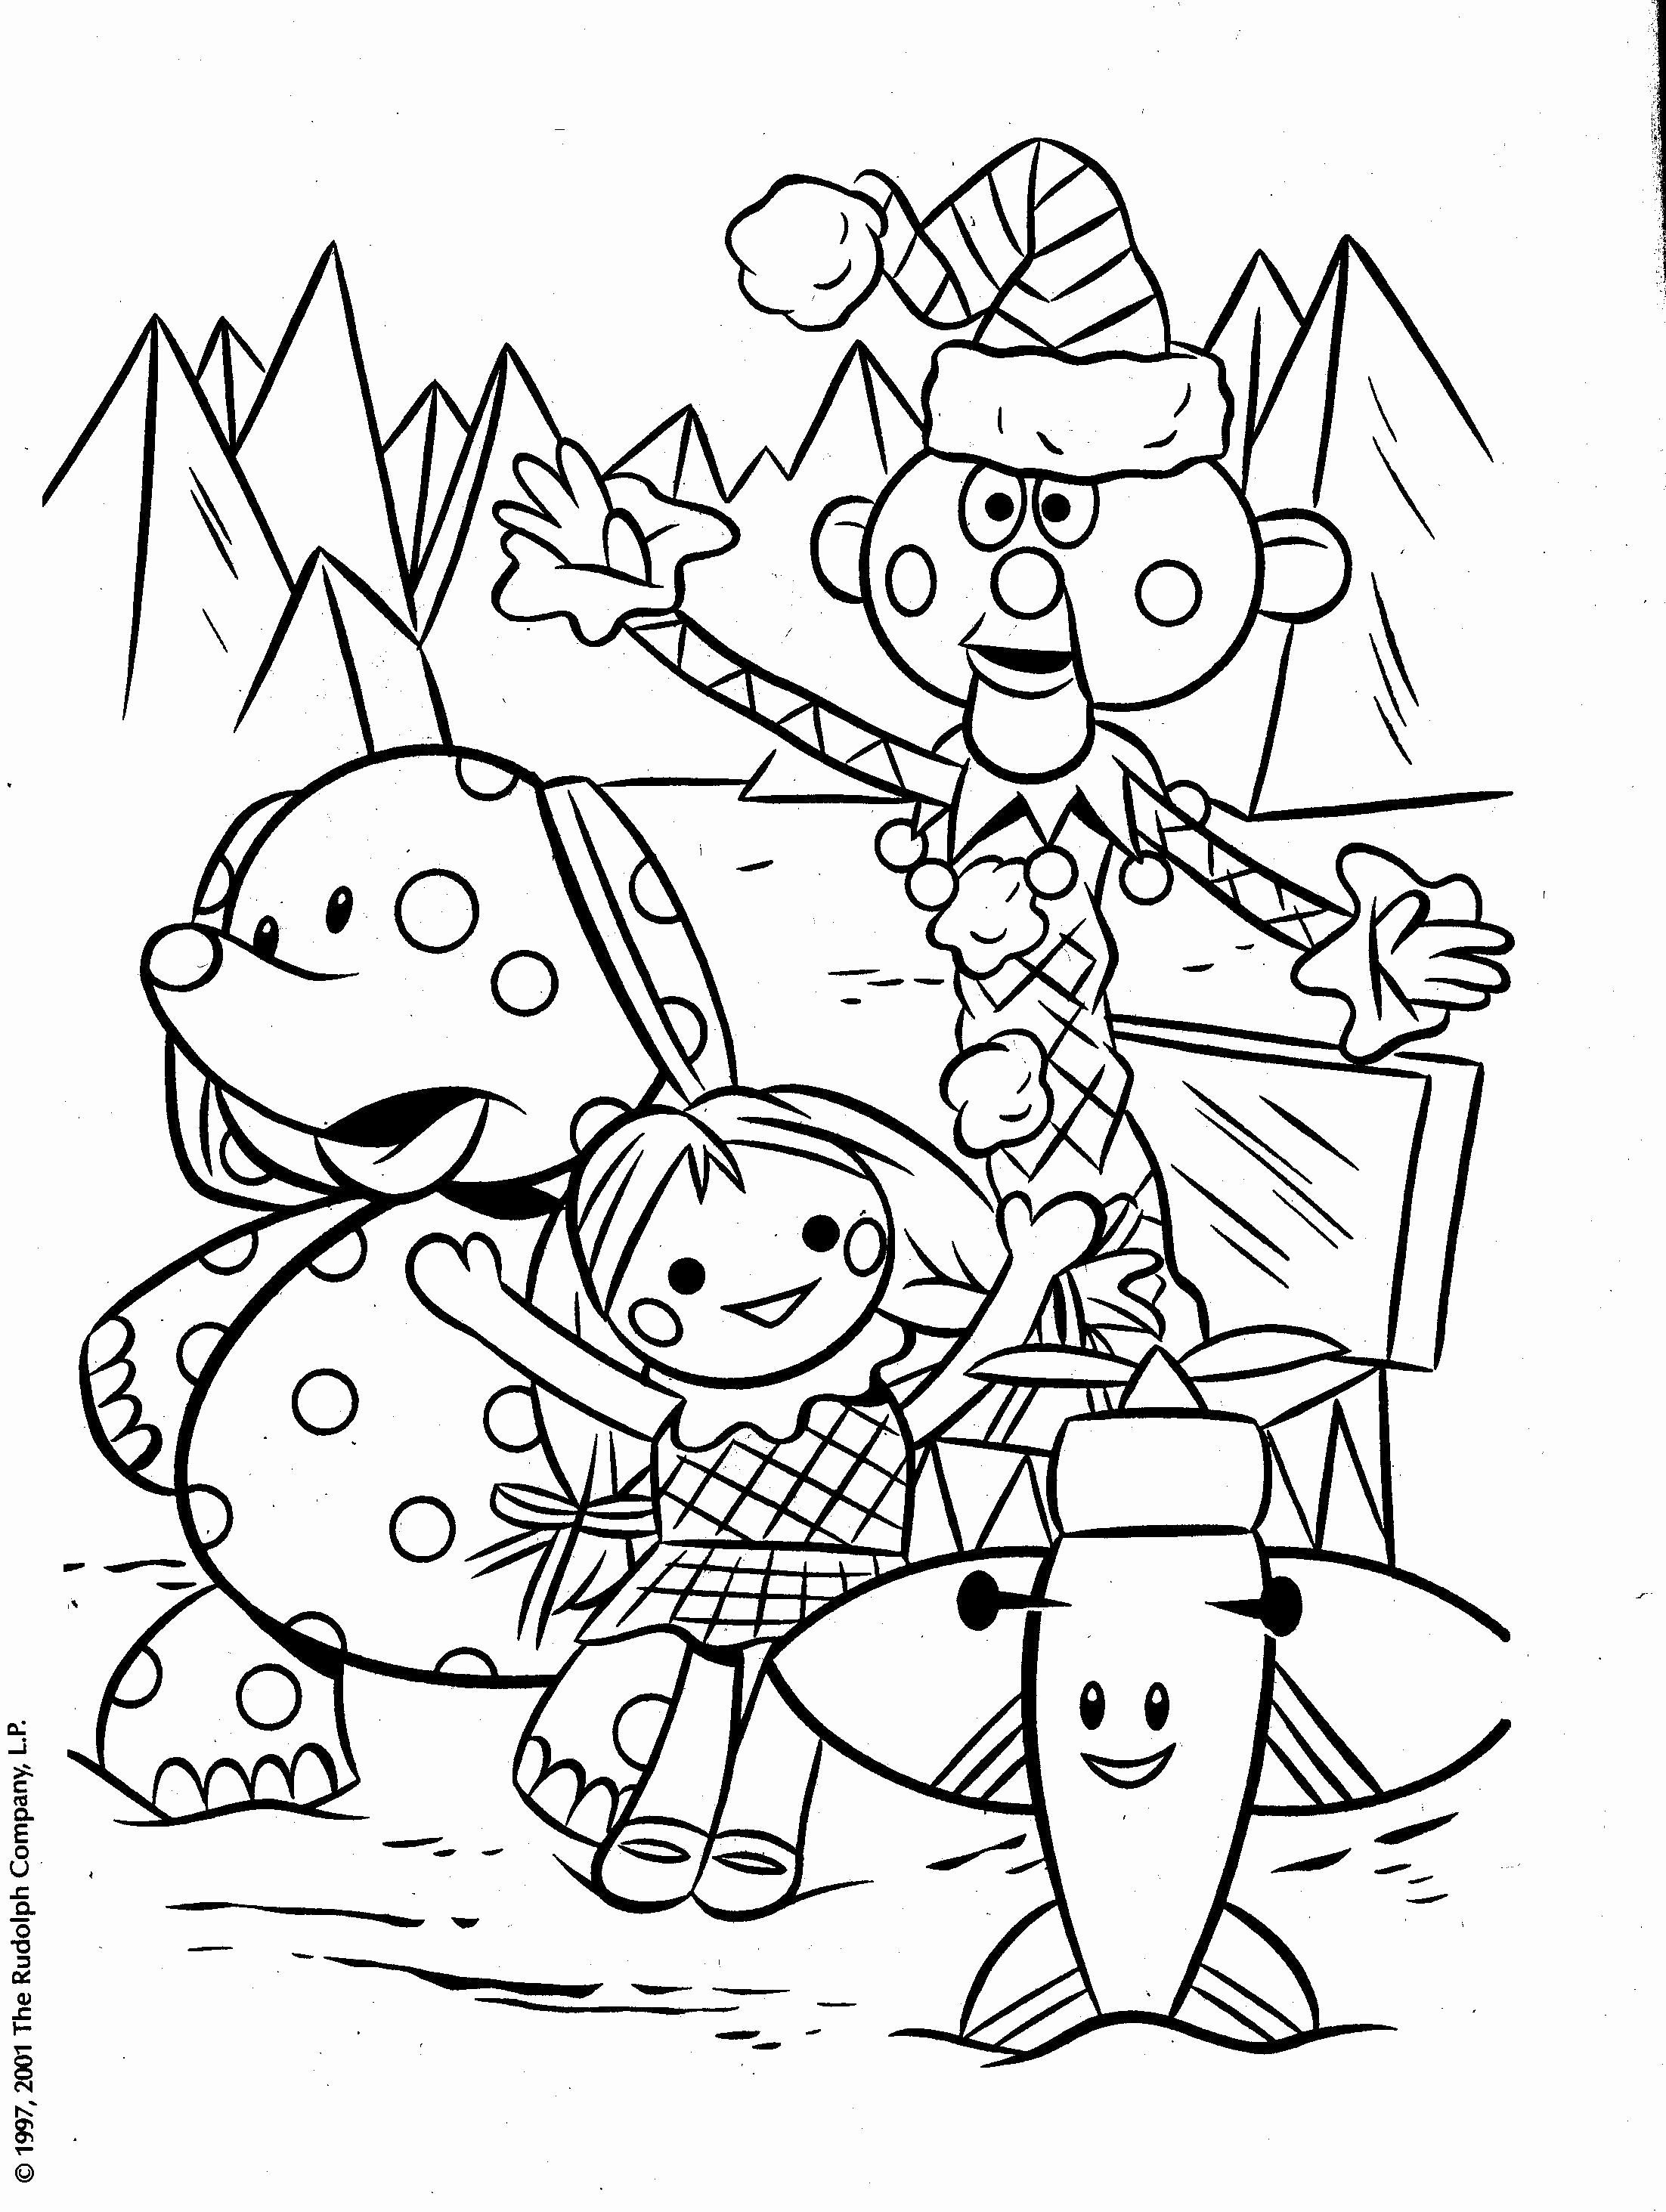 Santa And Rudolph Coloring Page Lovely Coloring Pages Astonishing Rudolph The Red Nosed Reindeer